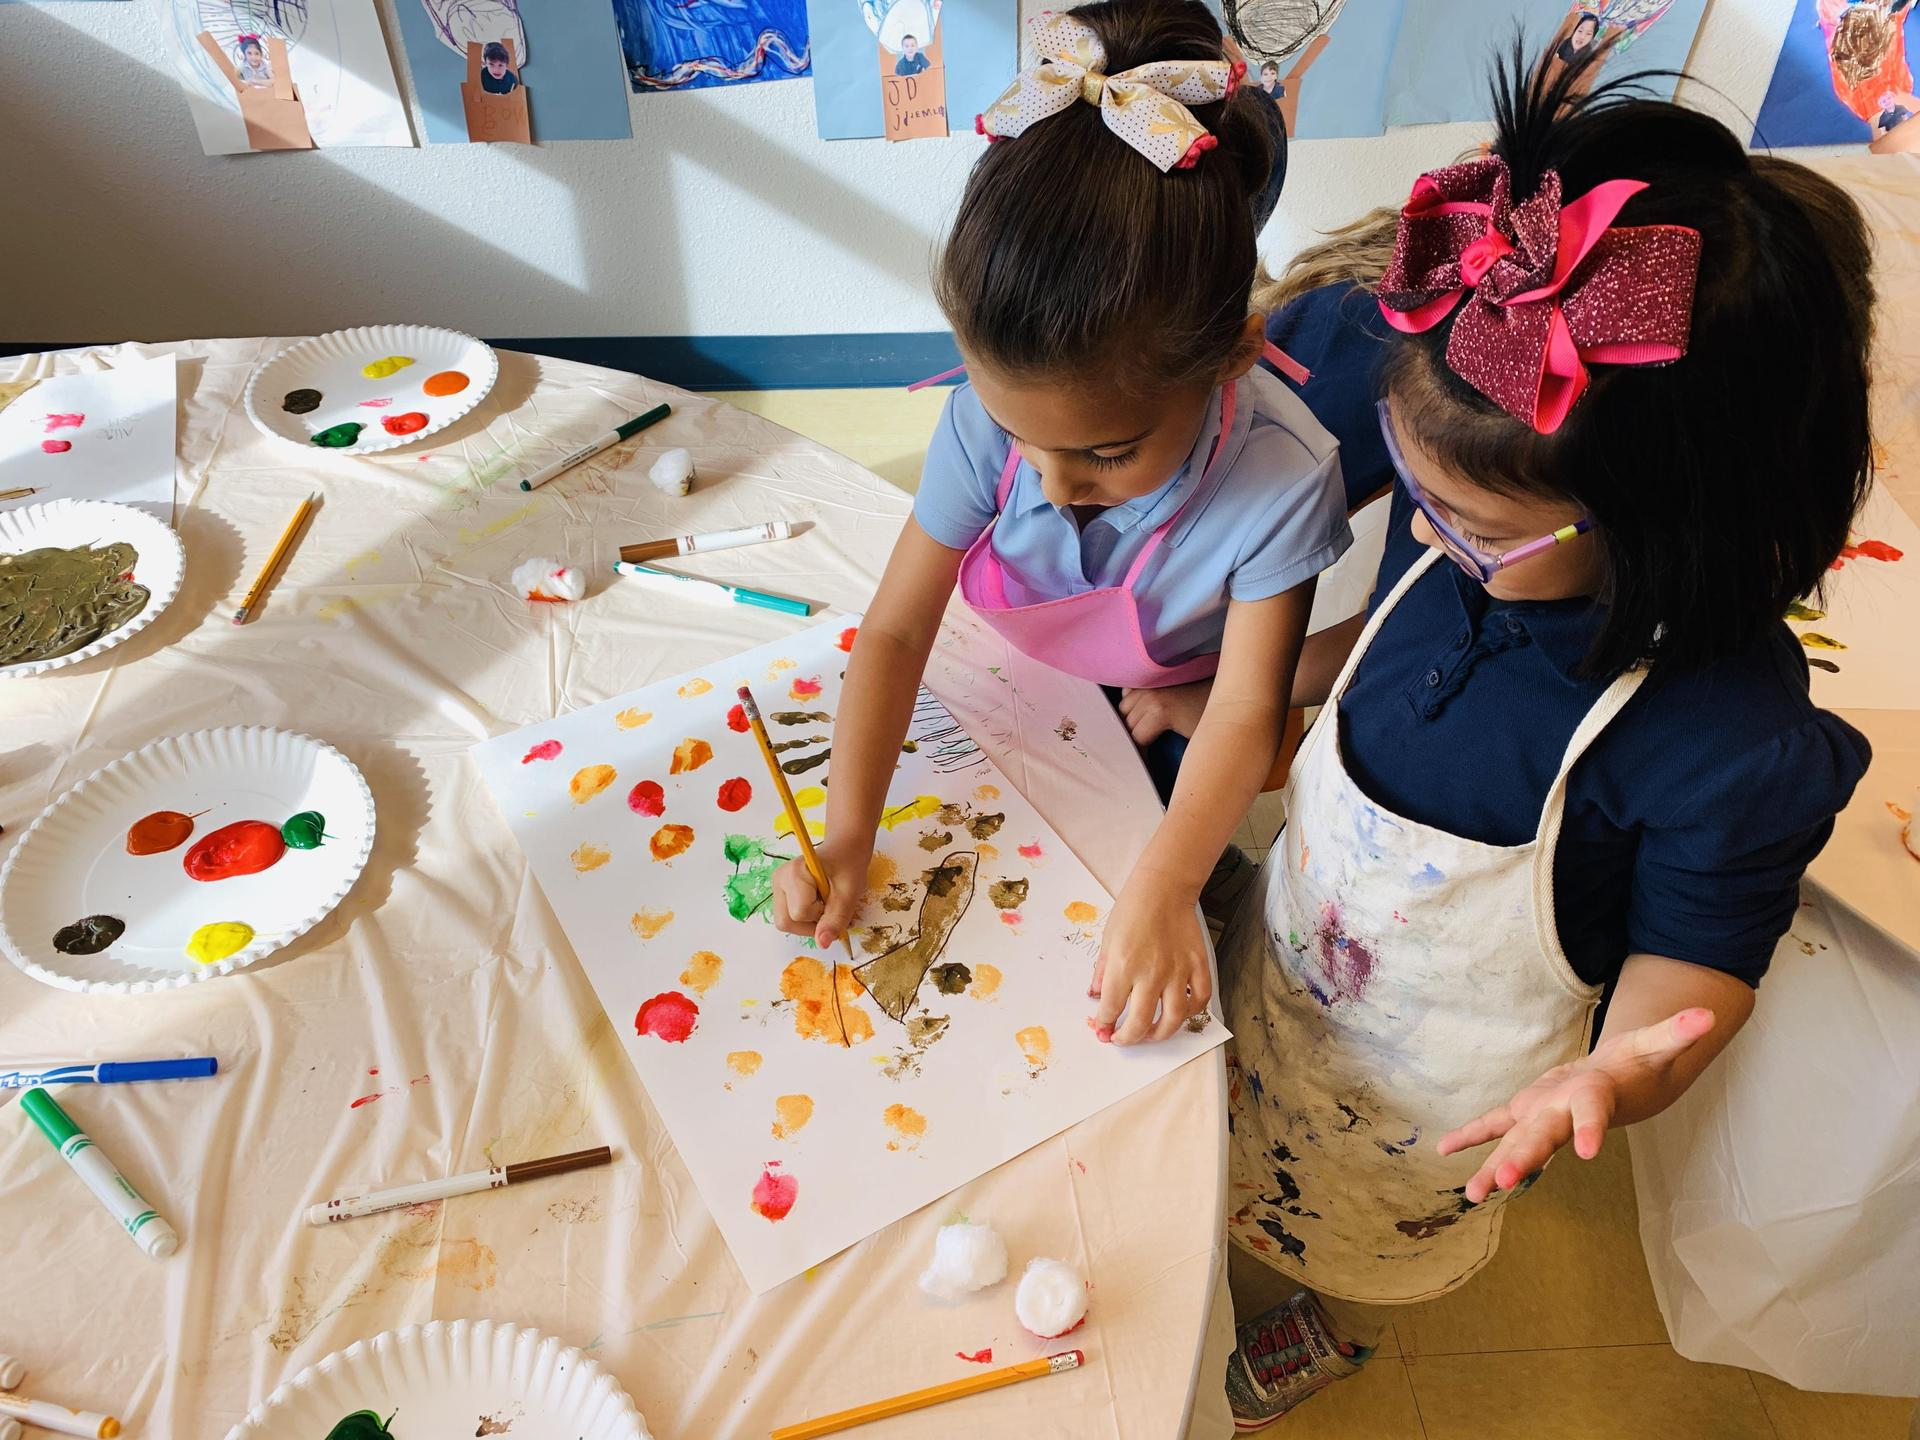 Two girls paint together.